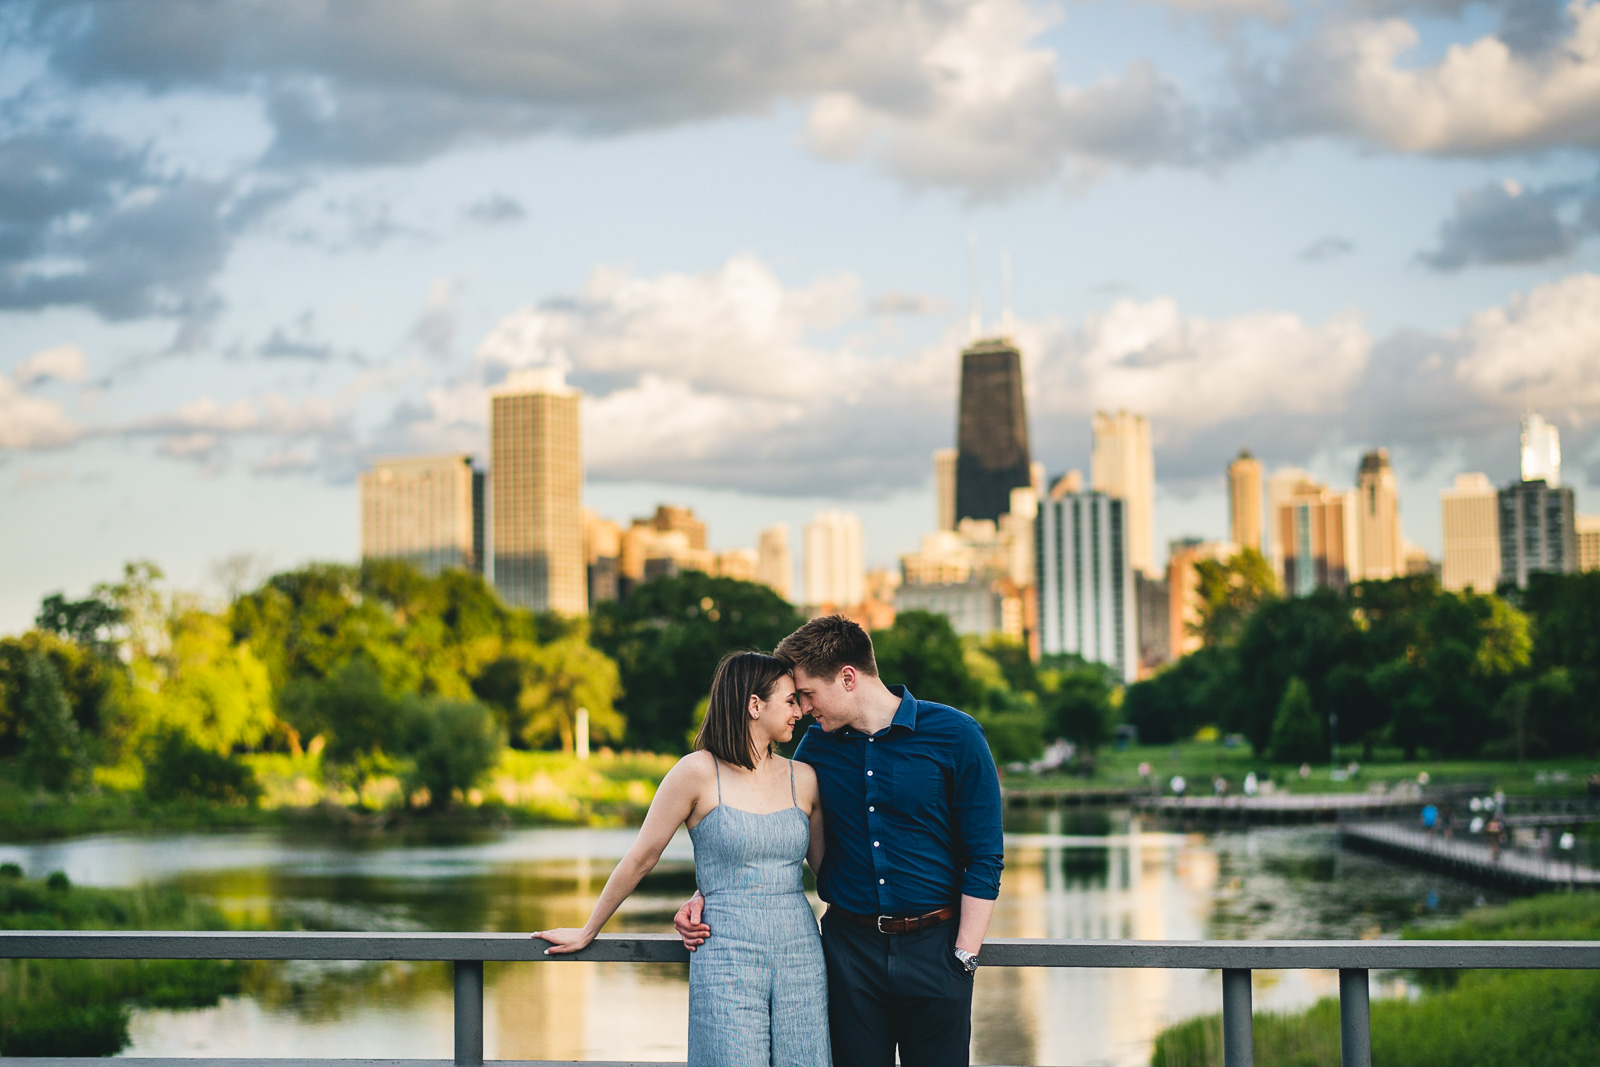 12 best skyline engagement session photos - Chicago Sunset Engagement Session // Lani + Ross